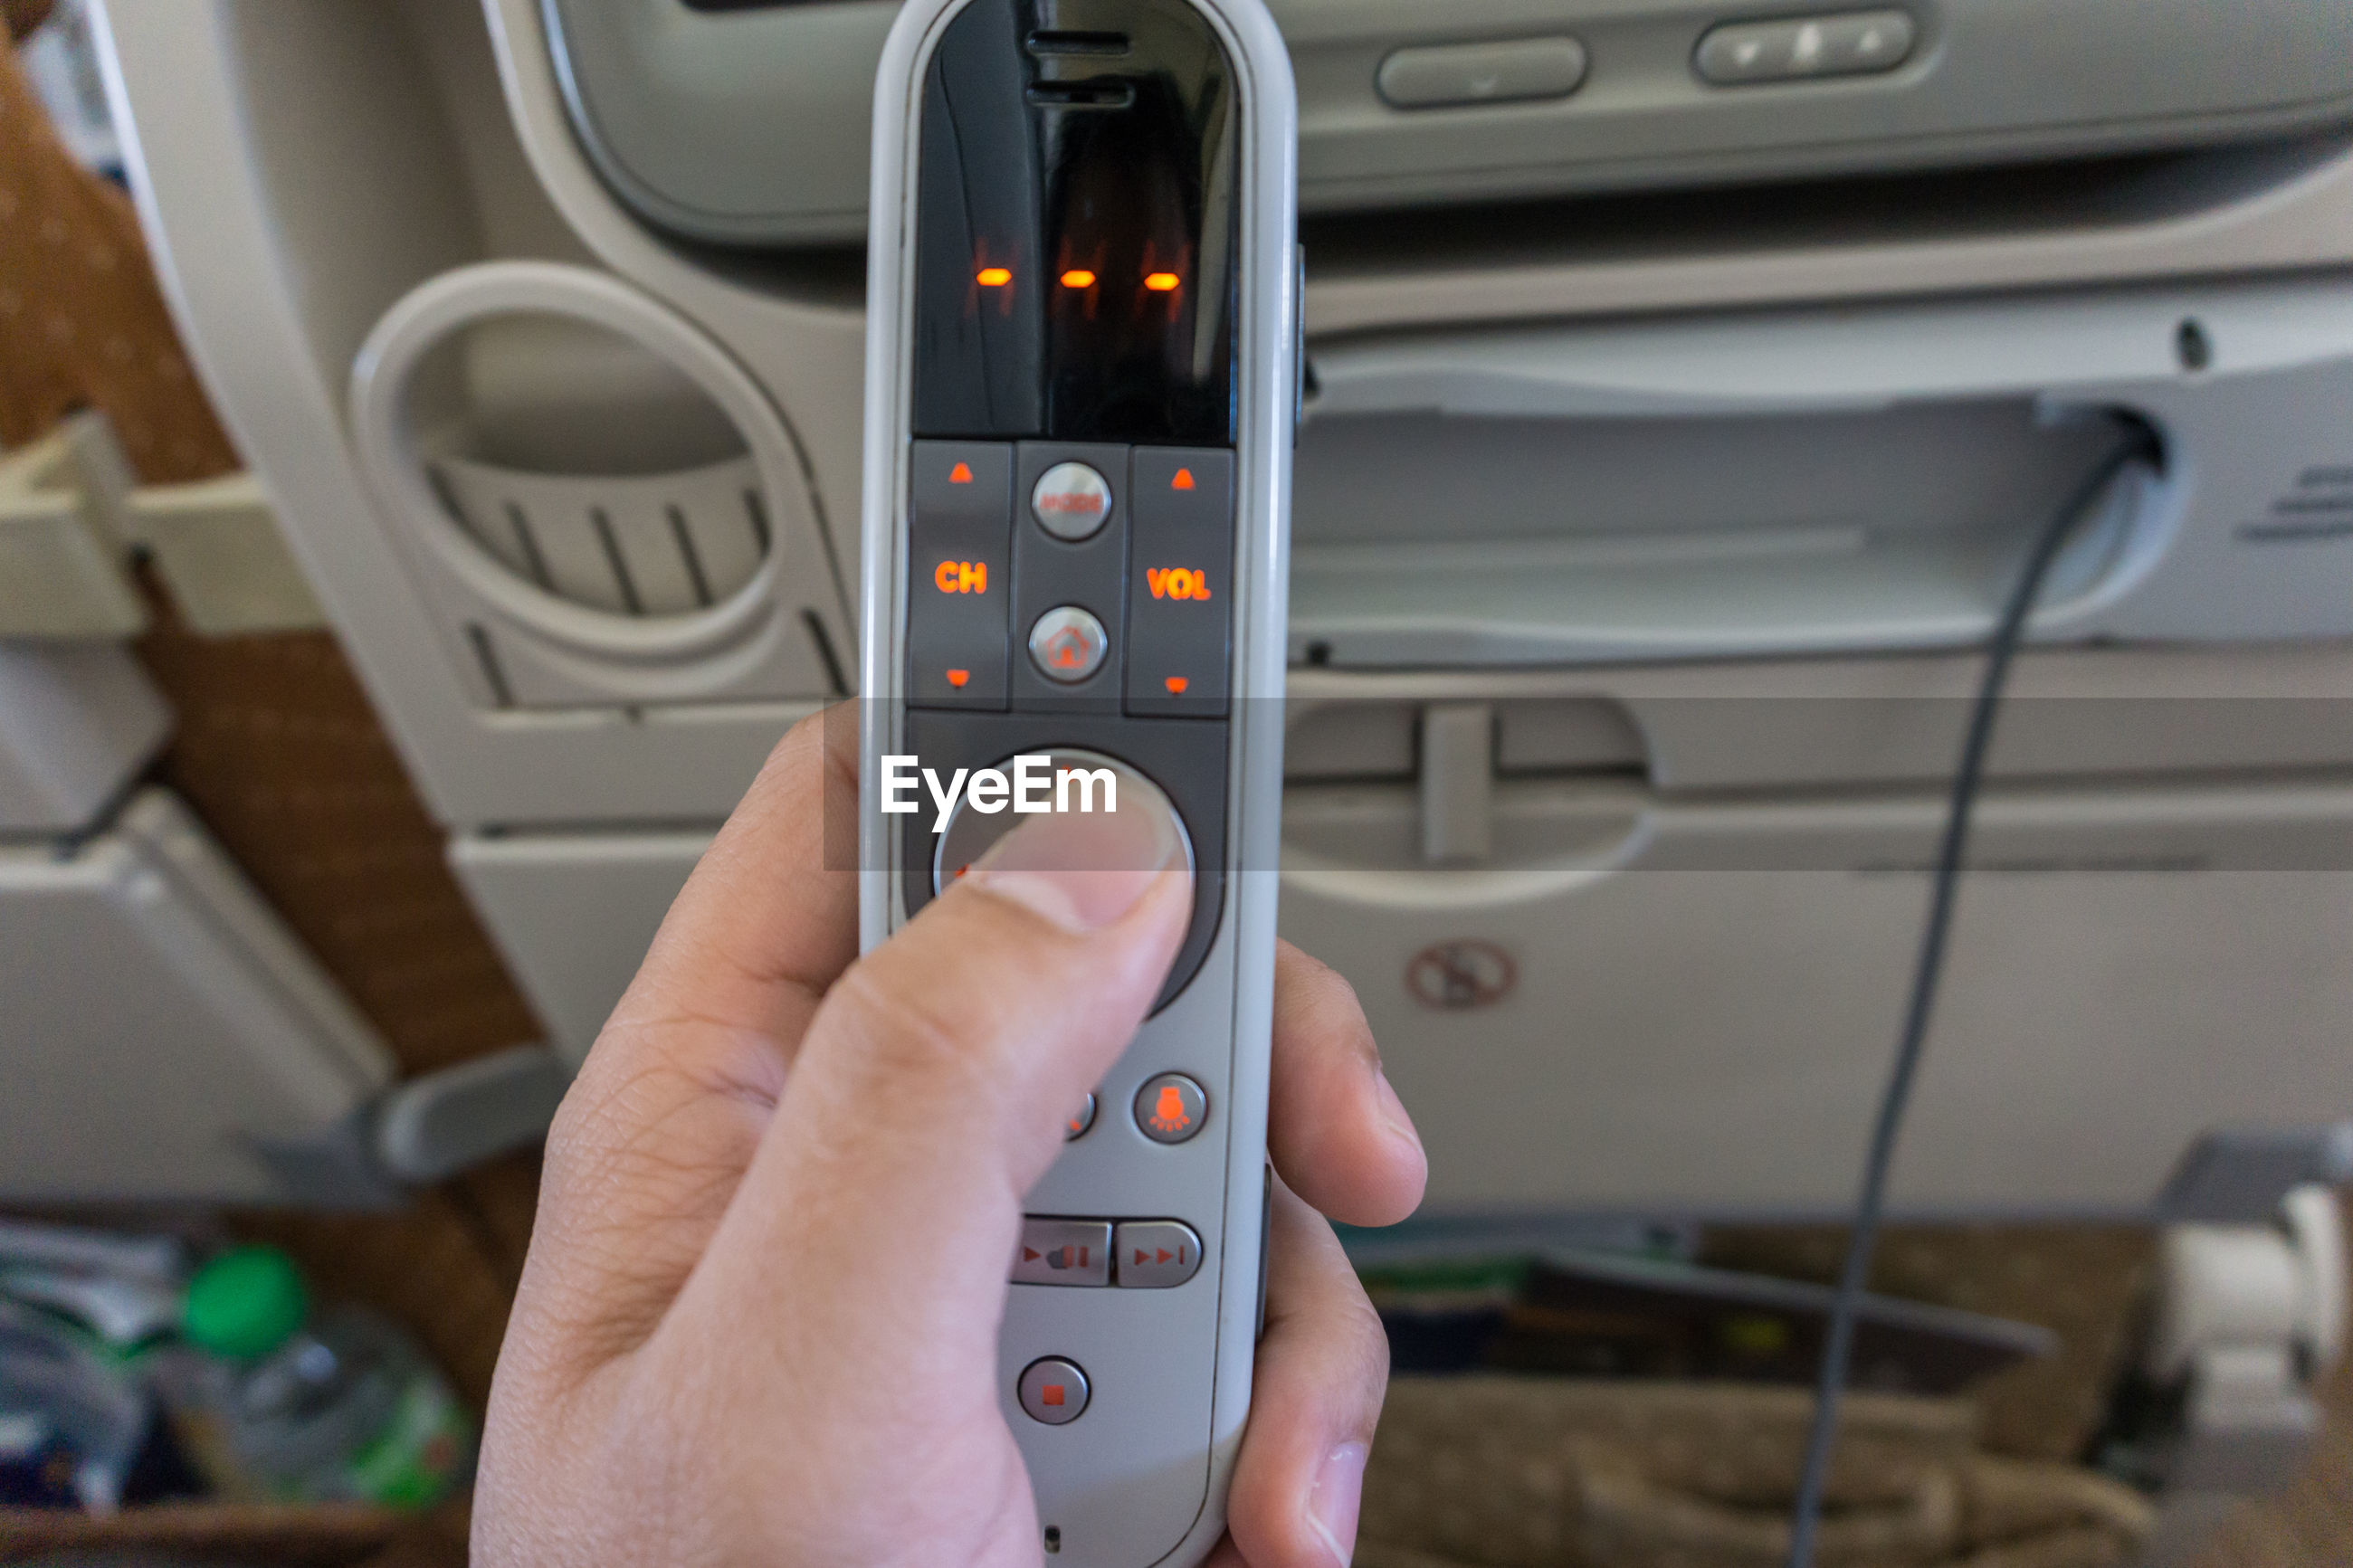 Cropped hand of person holding remote control in airplane